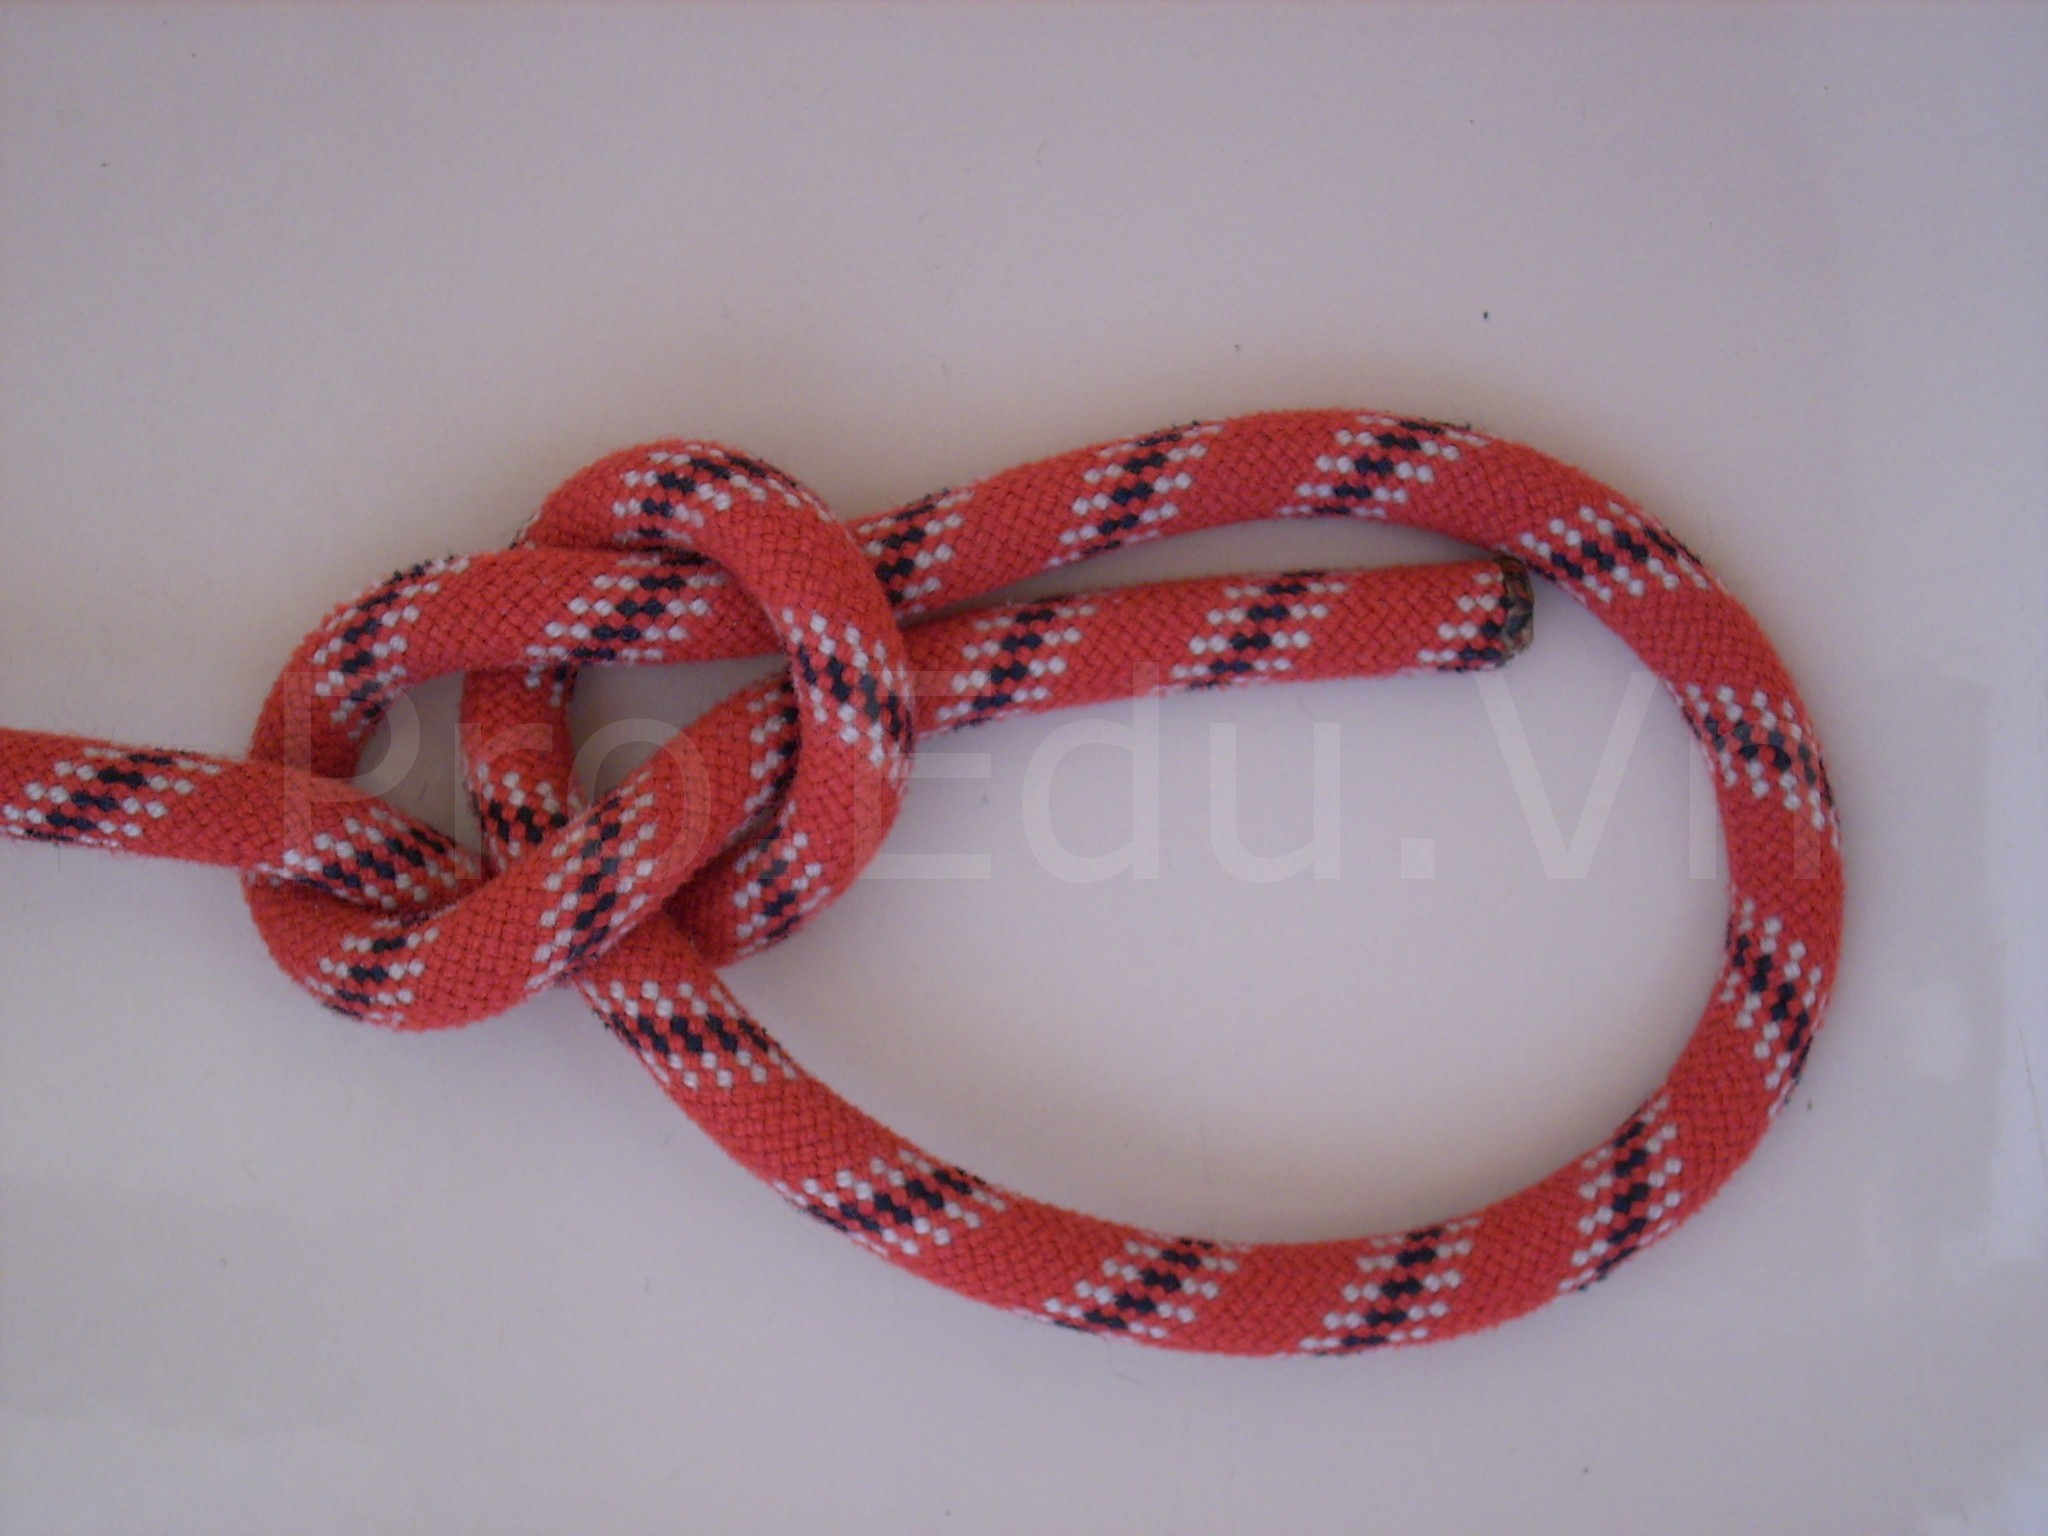 gut-ghe-don-bowline-knot